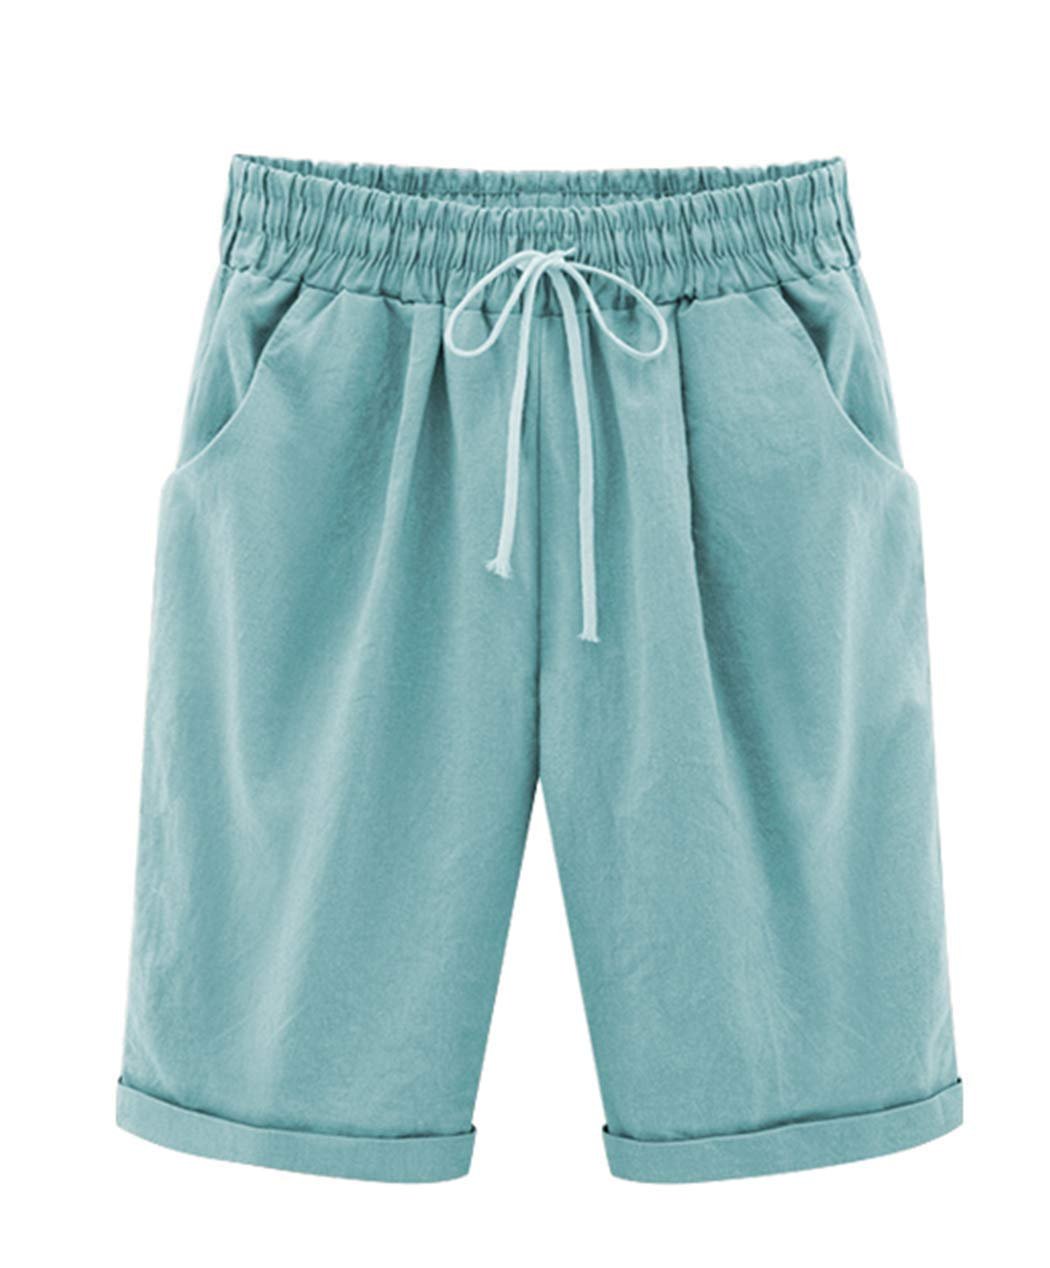 Vcansion Women's Casual Elastic Waist Knee-Length Curling Bermuda Shorts with Drawstring Turquoise Asian 3XL/US 8-10 by Vcansion